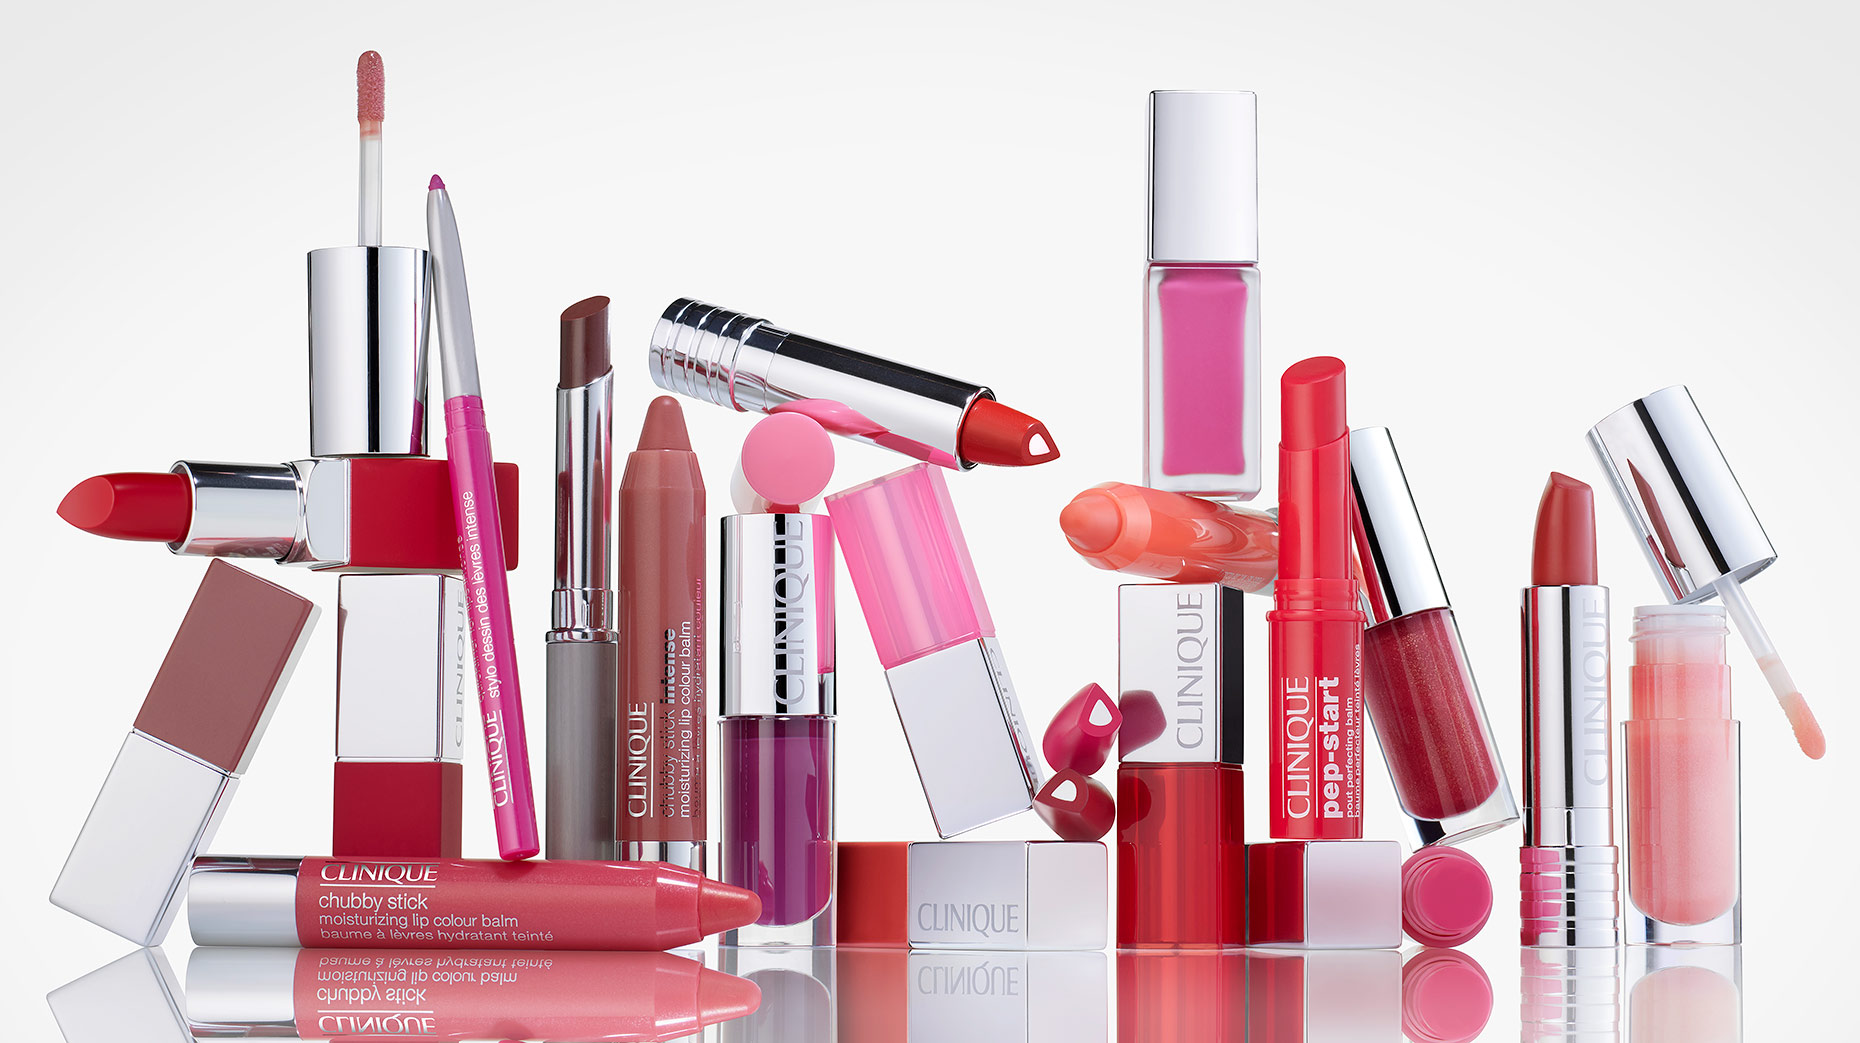 S19_ECOMM_MAY_BAU_NATIONAL_LIPSTICK_DAY_STILL_WEB_ON_057__PINK_LIPGLOSS_SILVERCAP-R2-copy